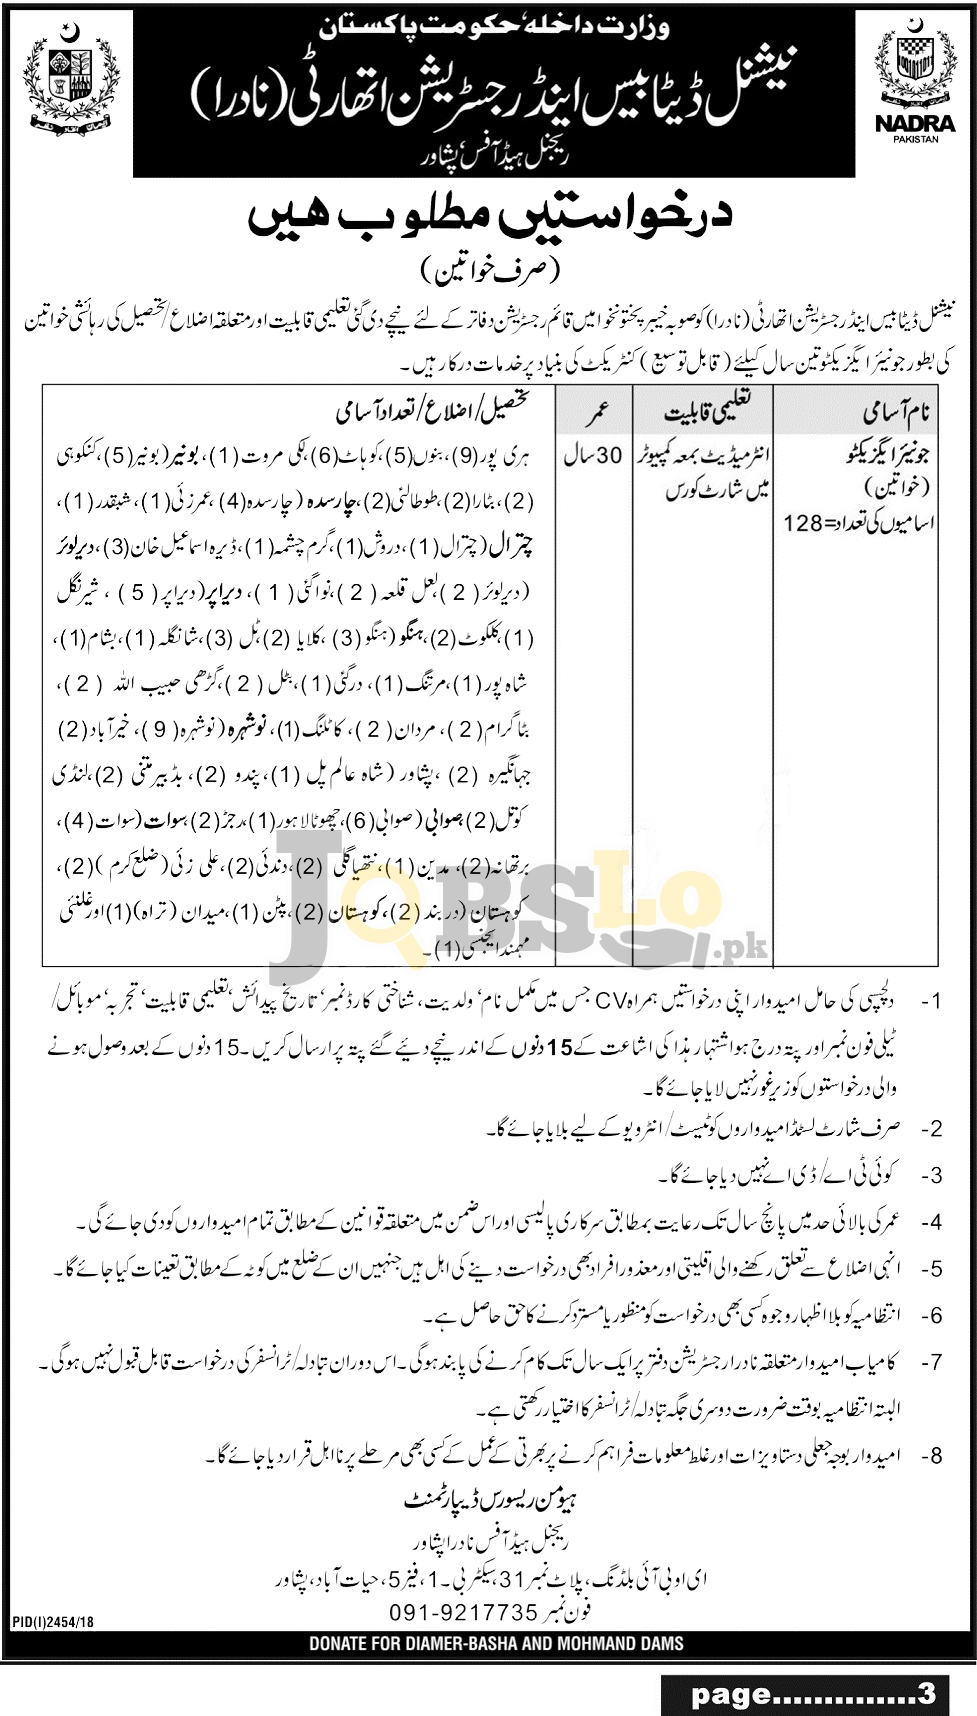 NADRA Jobs 2018 Peshawar KPK Latest For Junior Executive